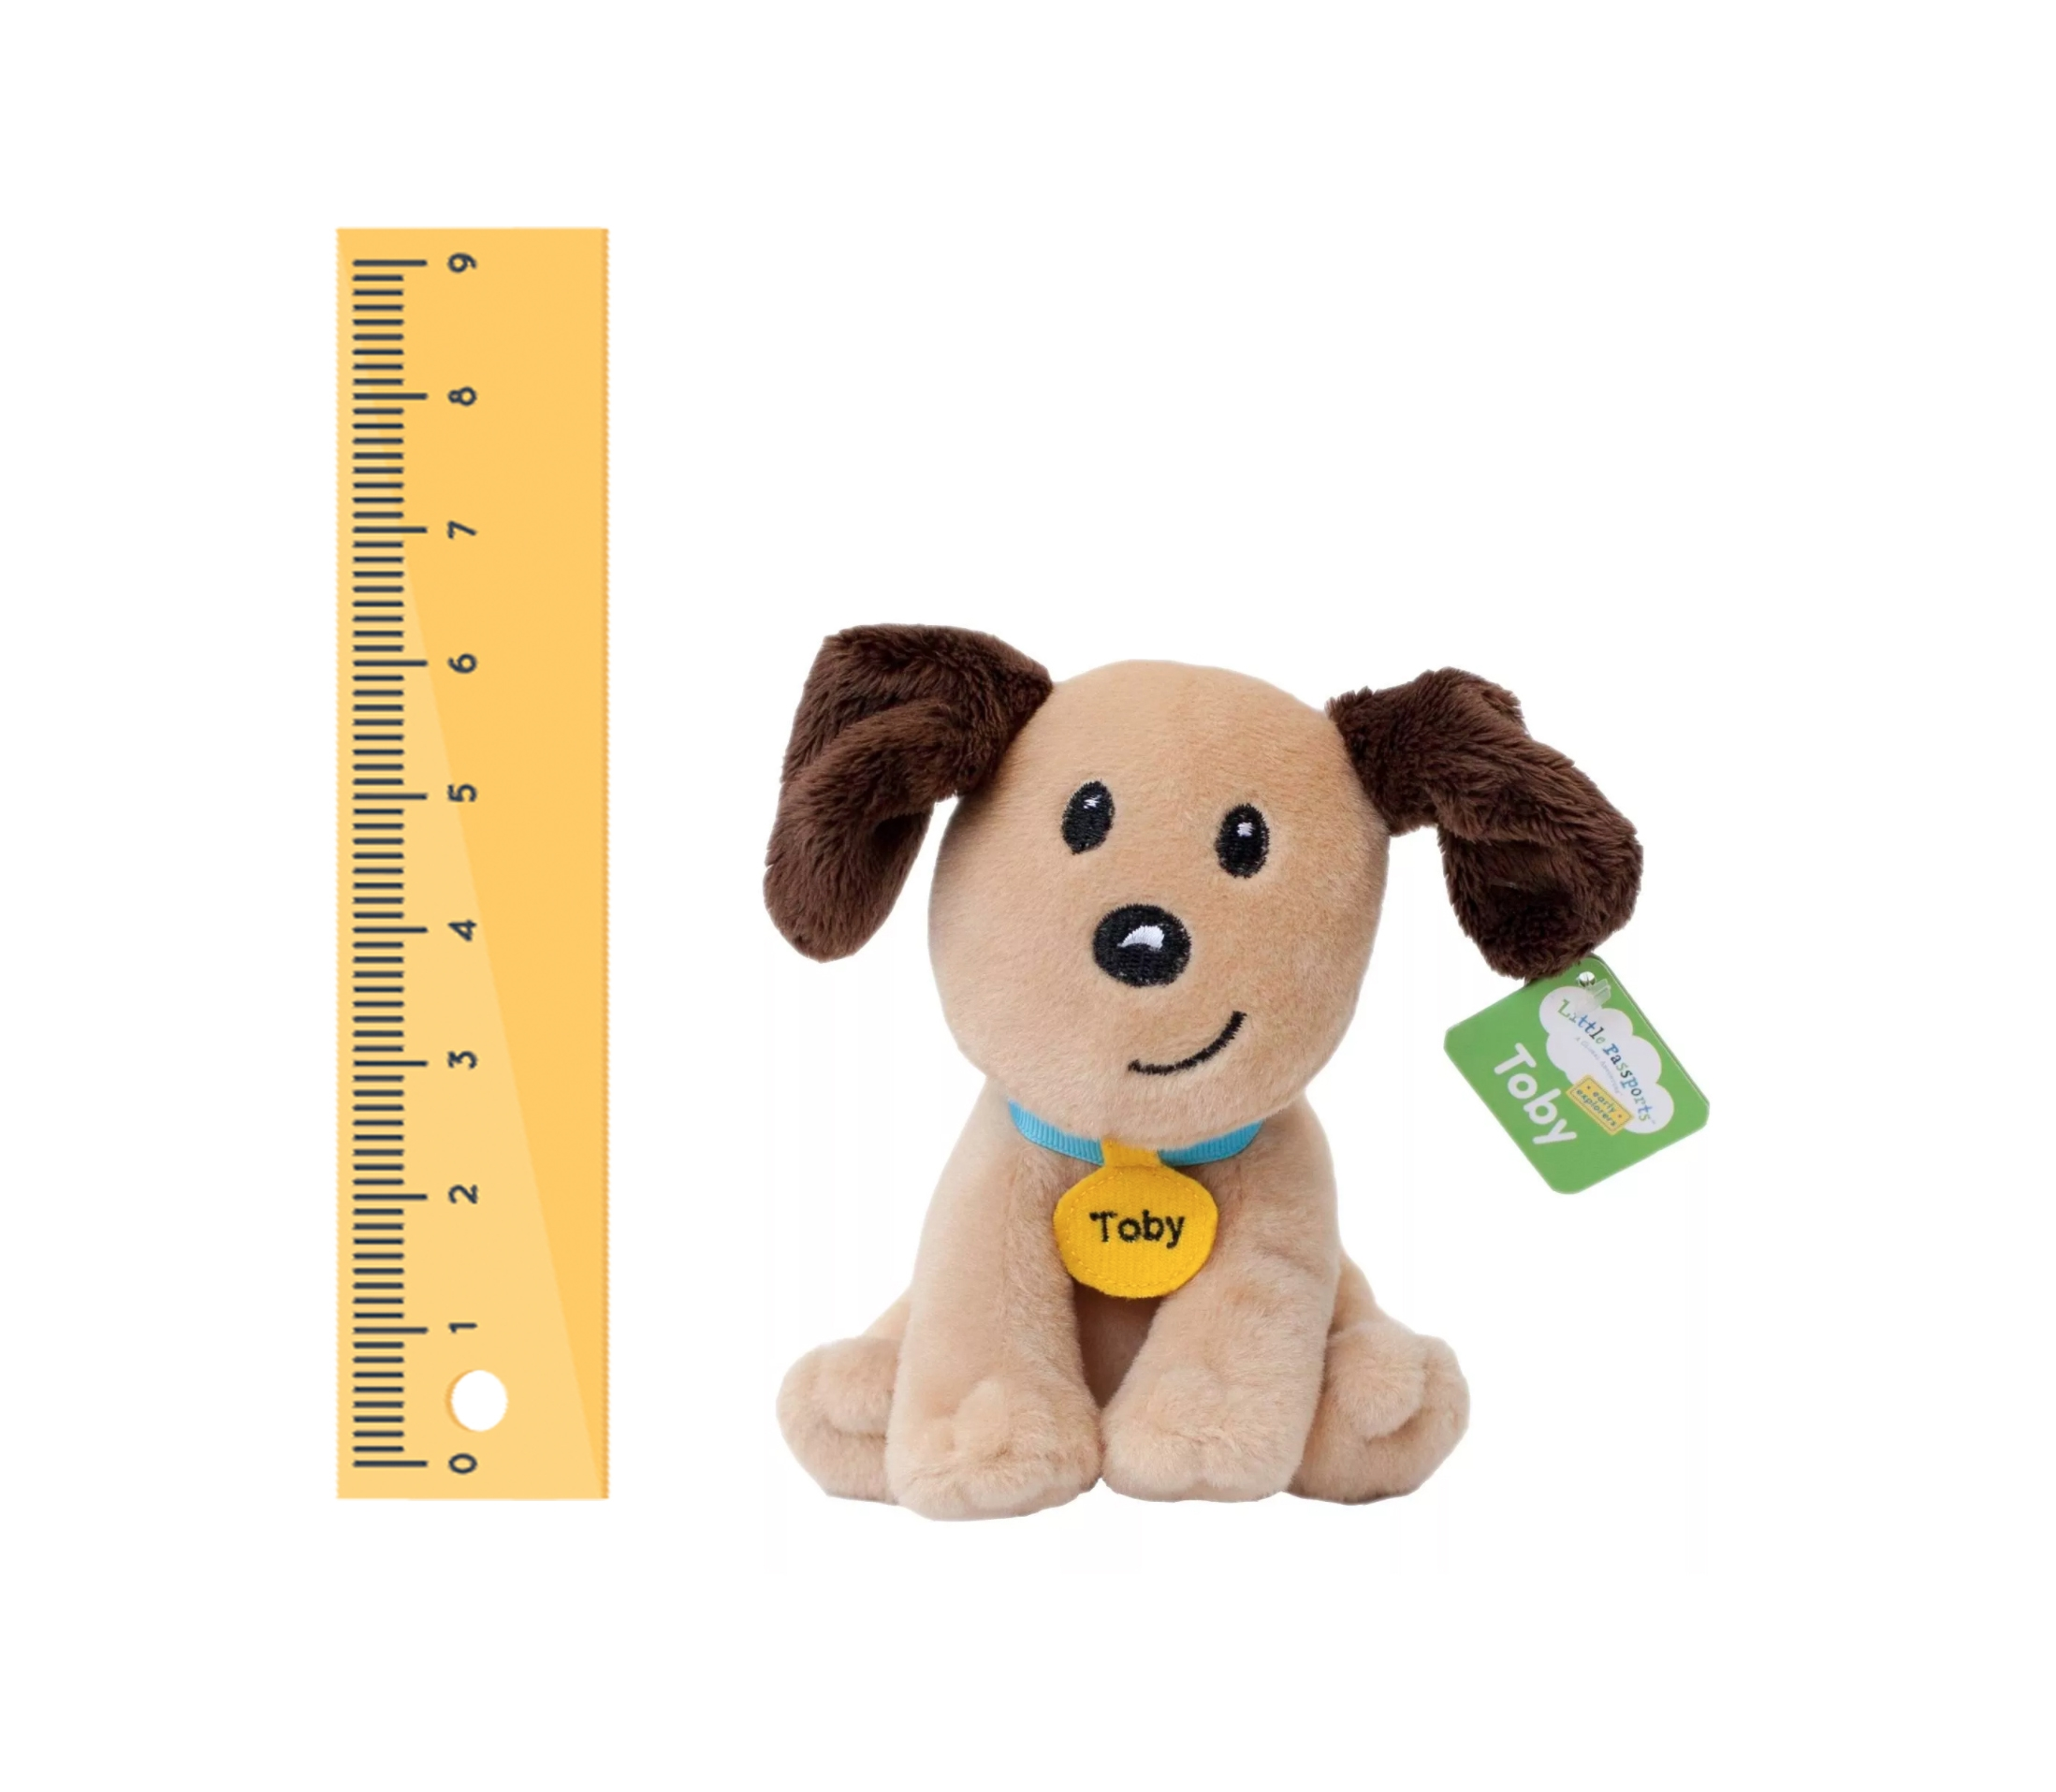 "Alternate Small 6"" Toby Plush image 0"